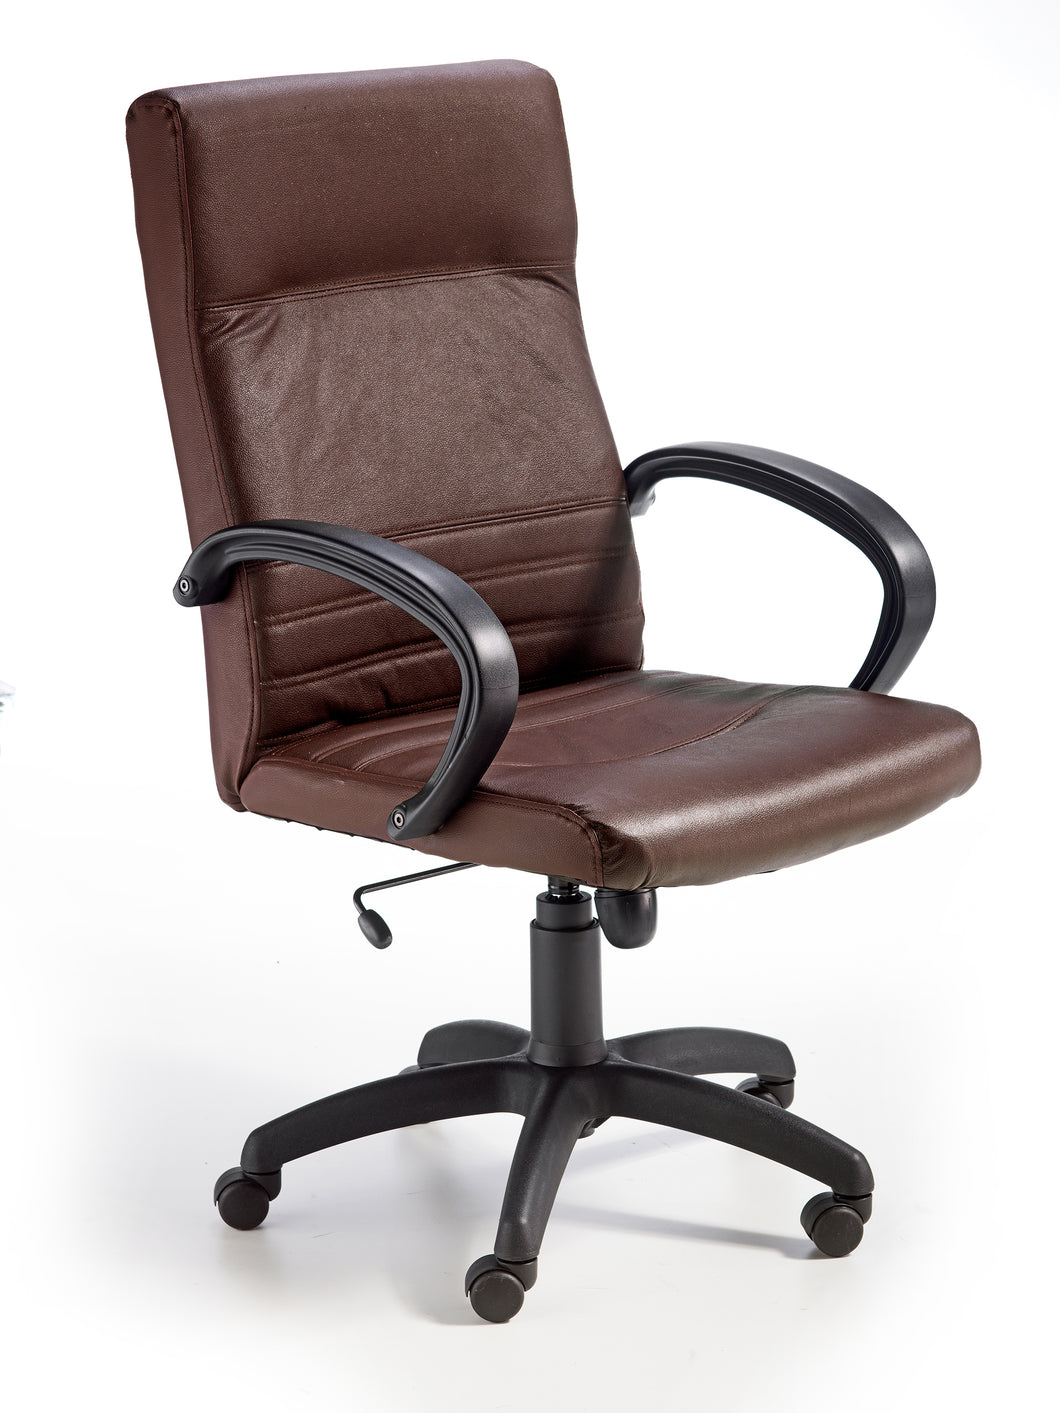 office armchair 5 castors height adjustable with gas lift tilting mechanism brown